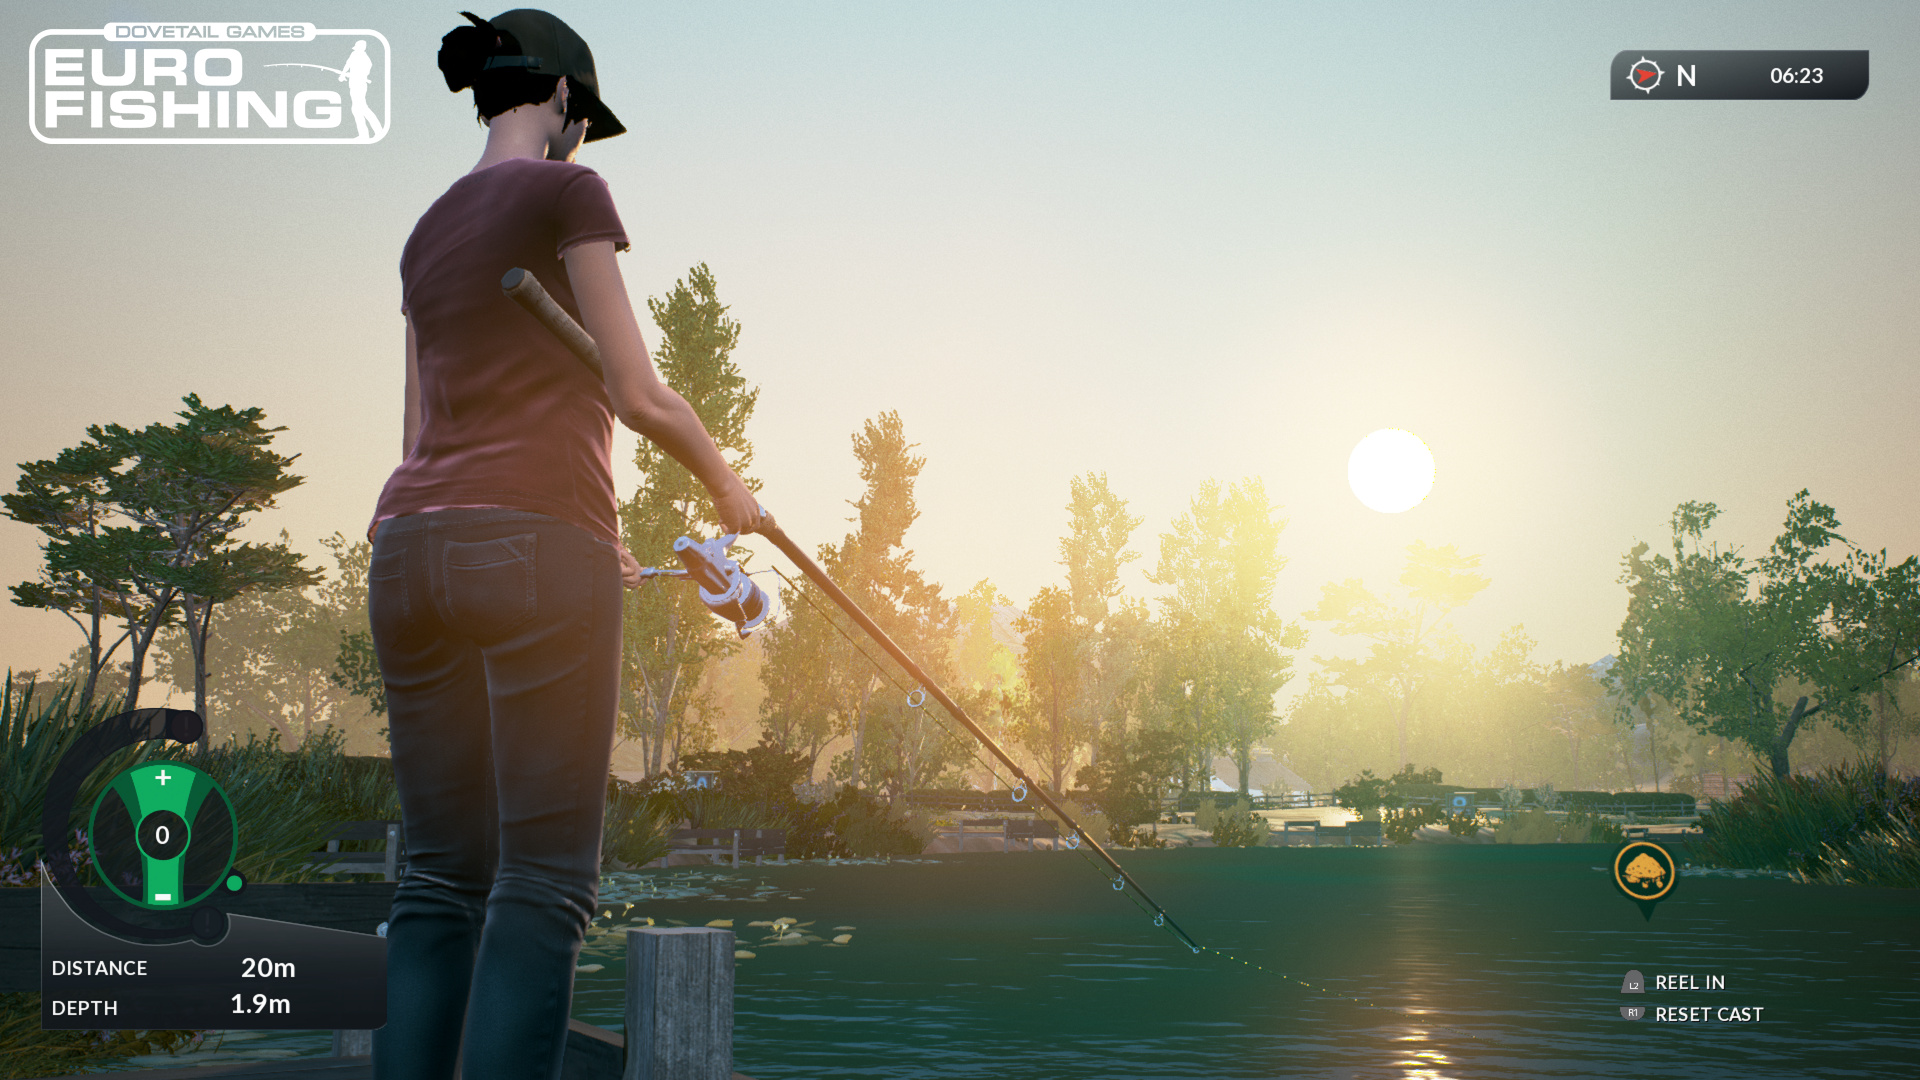 dovetail games euro fishing review